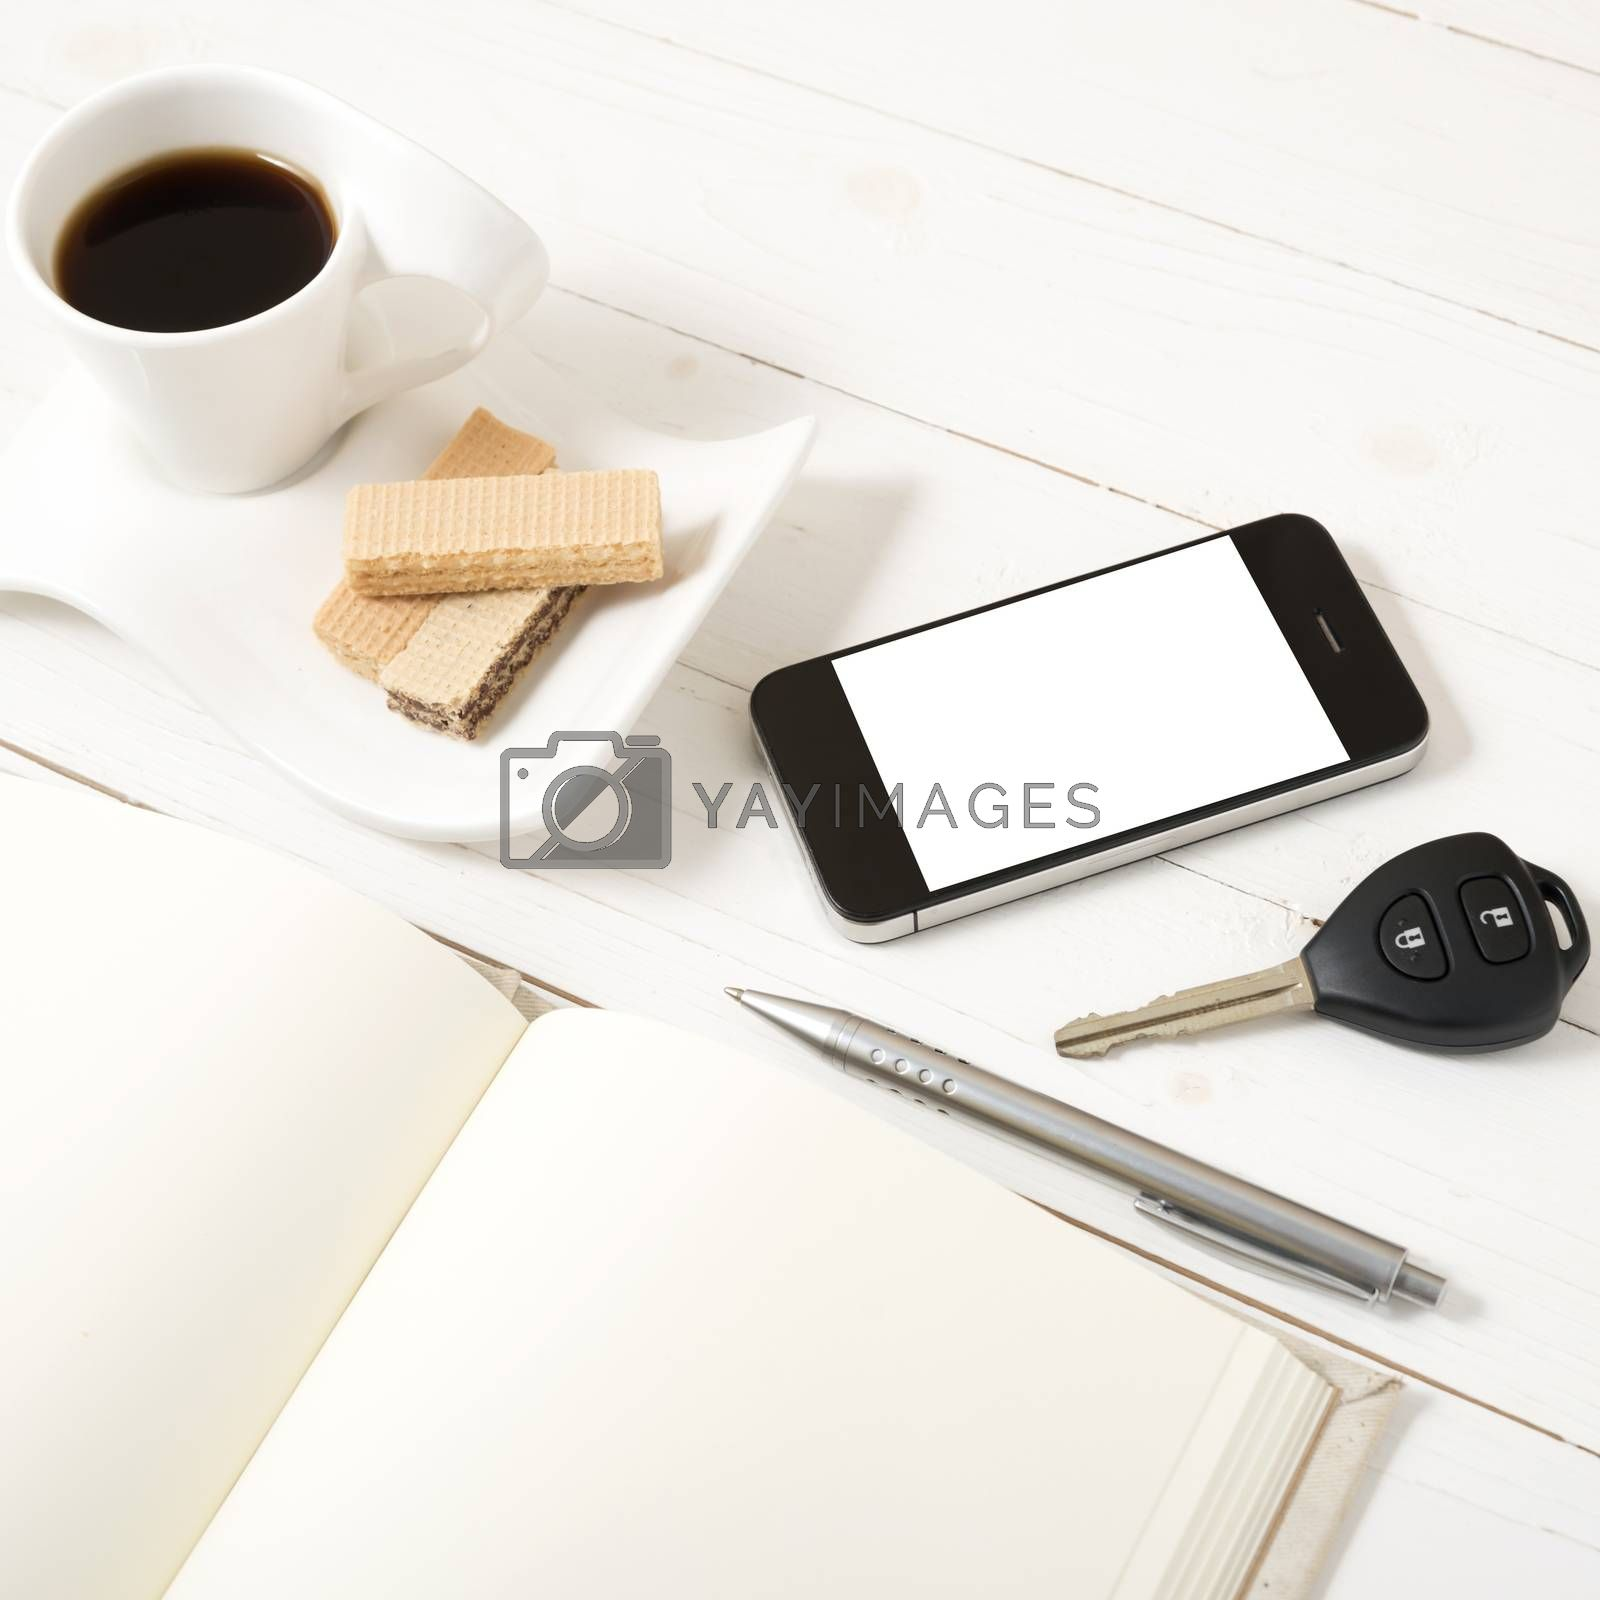 coffee cup with wafer,phone,car key,notebook on white wood background